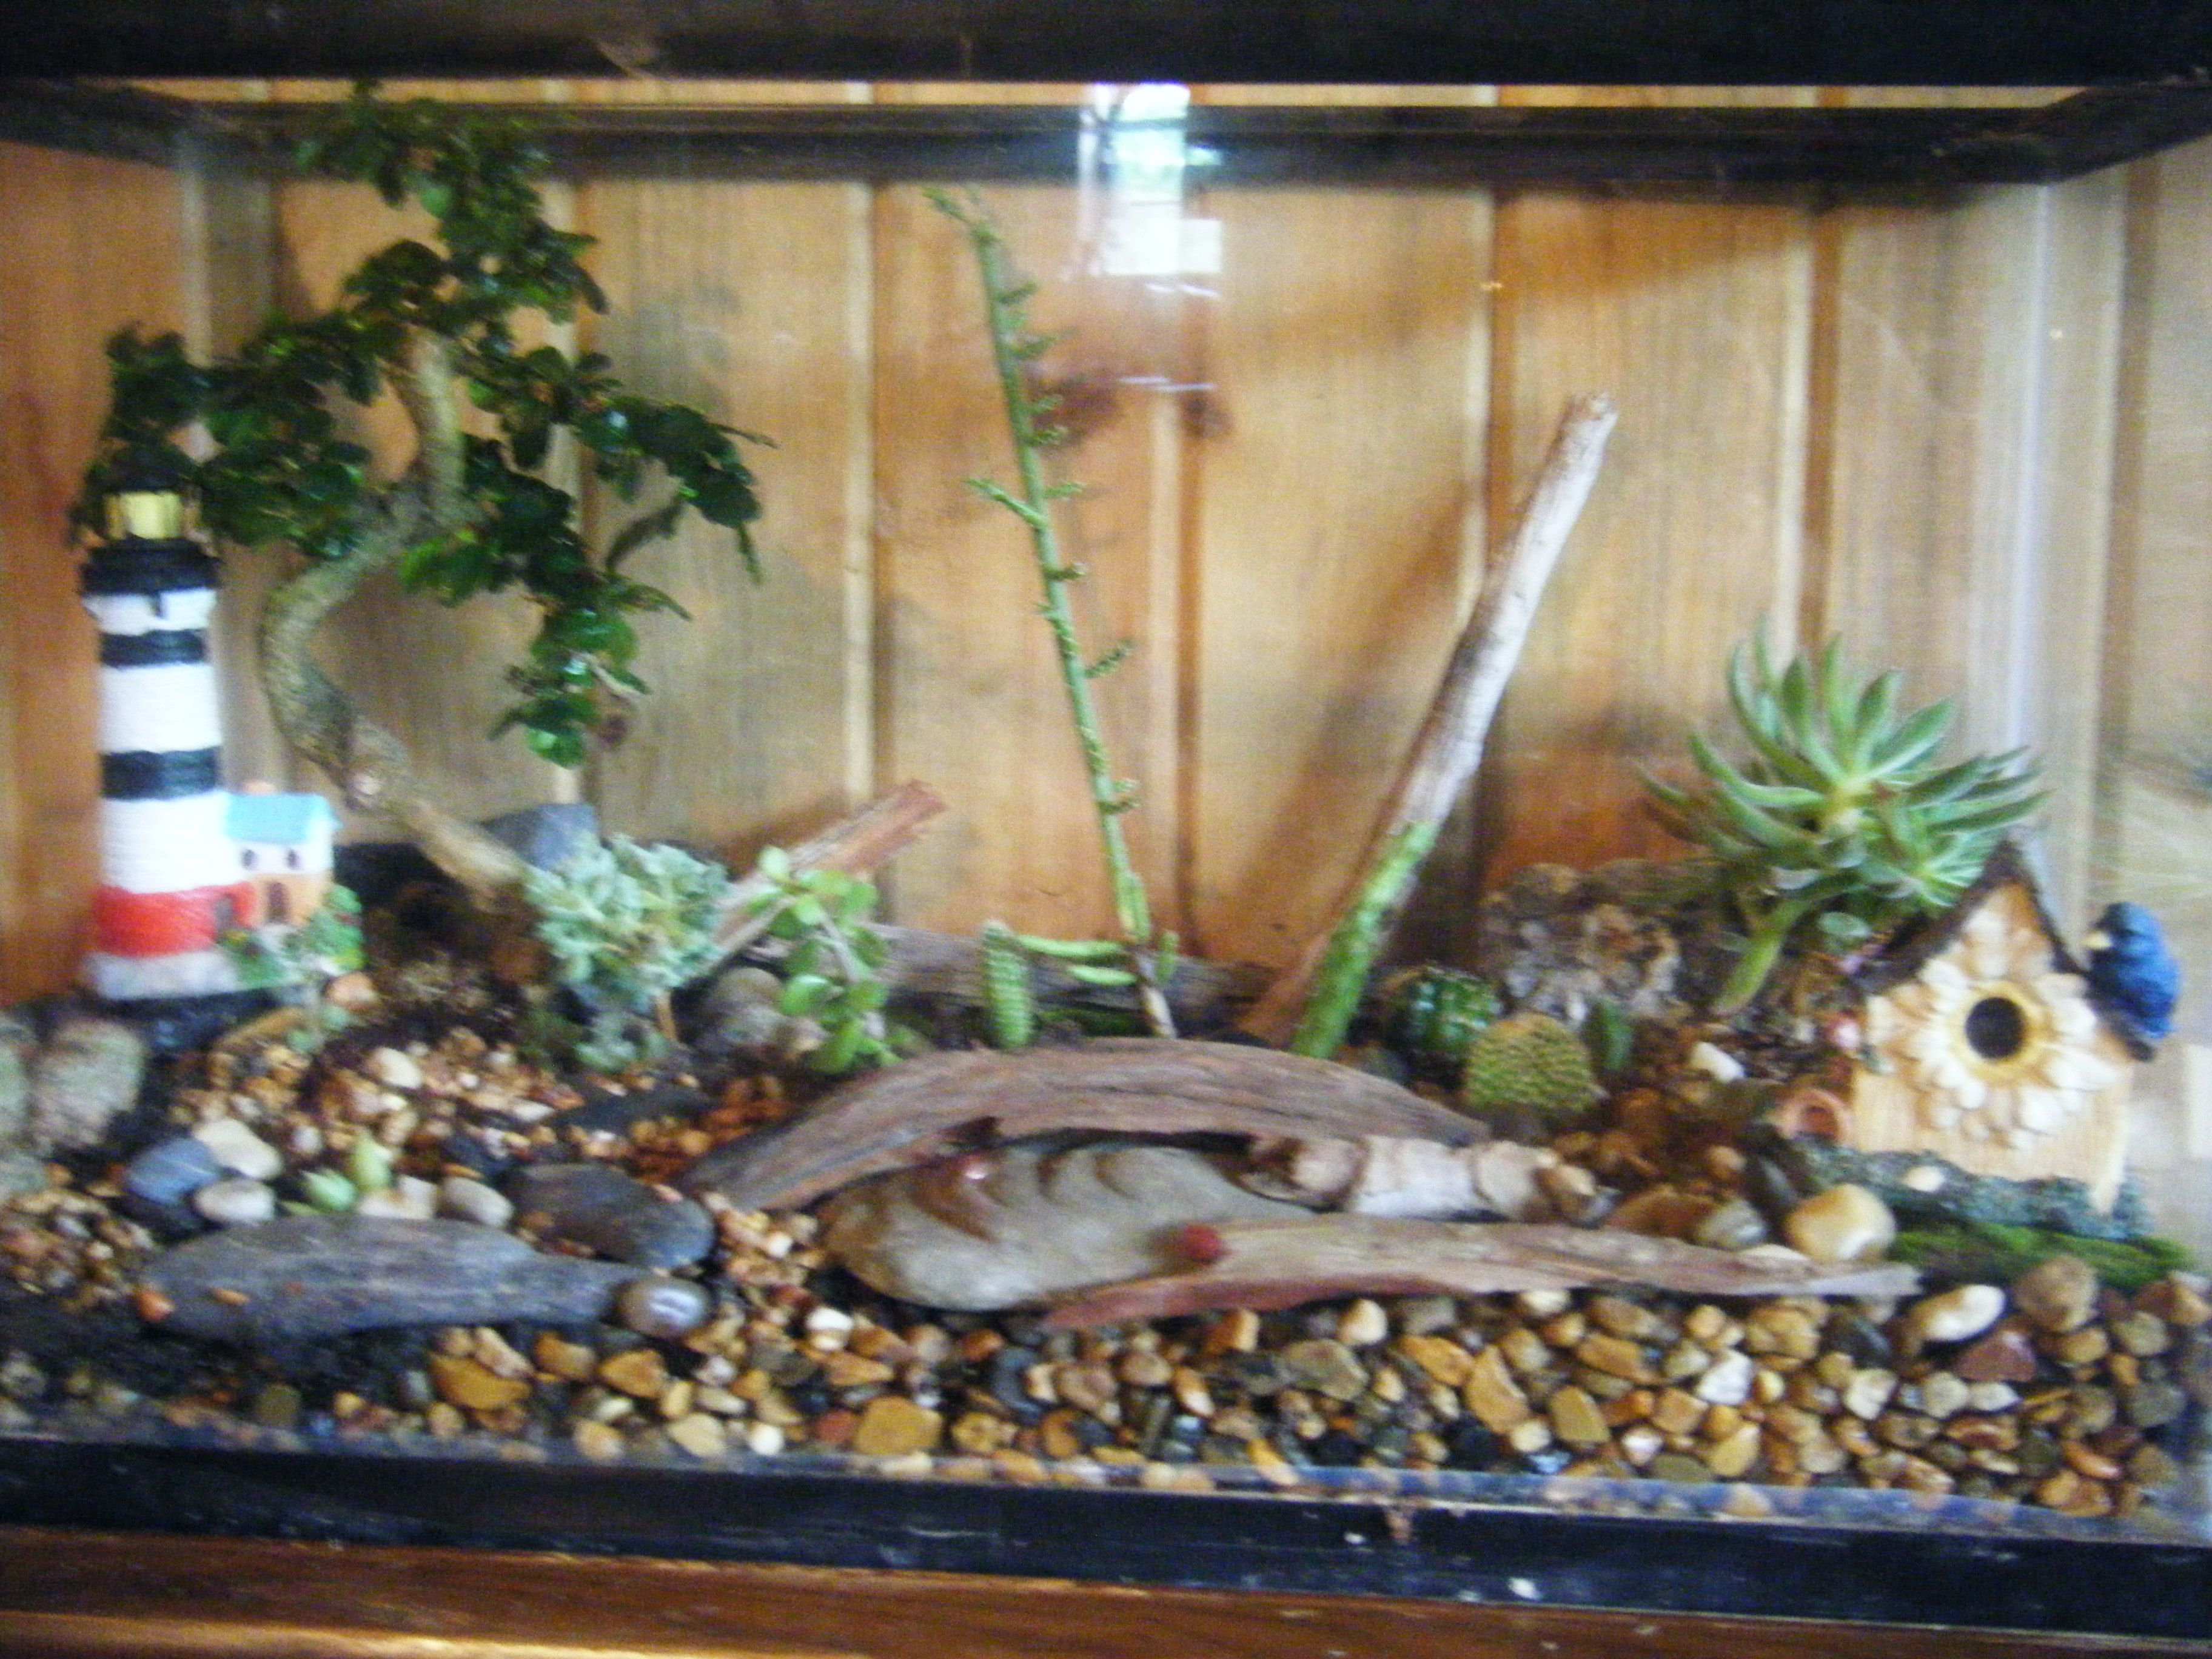 A fish tank converted into terrariumwith diff kinds of cactus